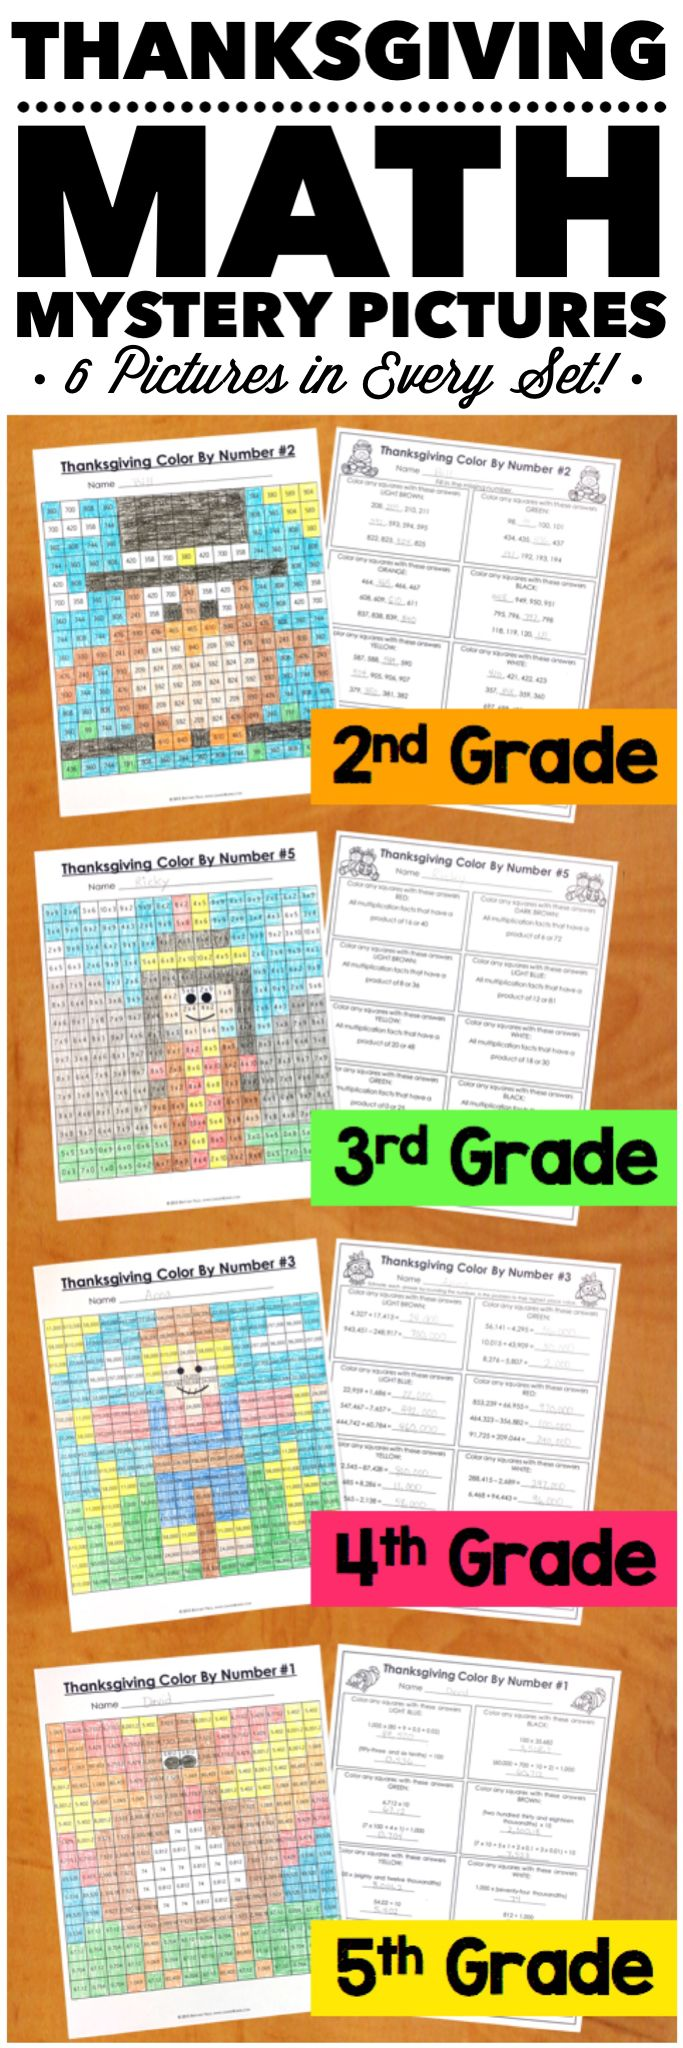 """My students LOVE these because they are fun to solve and color! I love them because it is a great review of the skills!"" These Thanksgiving Math Color by Number Activities are the perfect way to review key math skills taught throughout the beginning of the year. Each set comes with 6 different pictures, and each picture focuses on a different skill. Different versions available for 2nd, 3rd, 4th, and 5th grades."